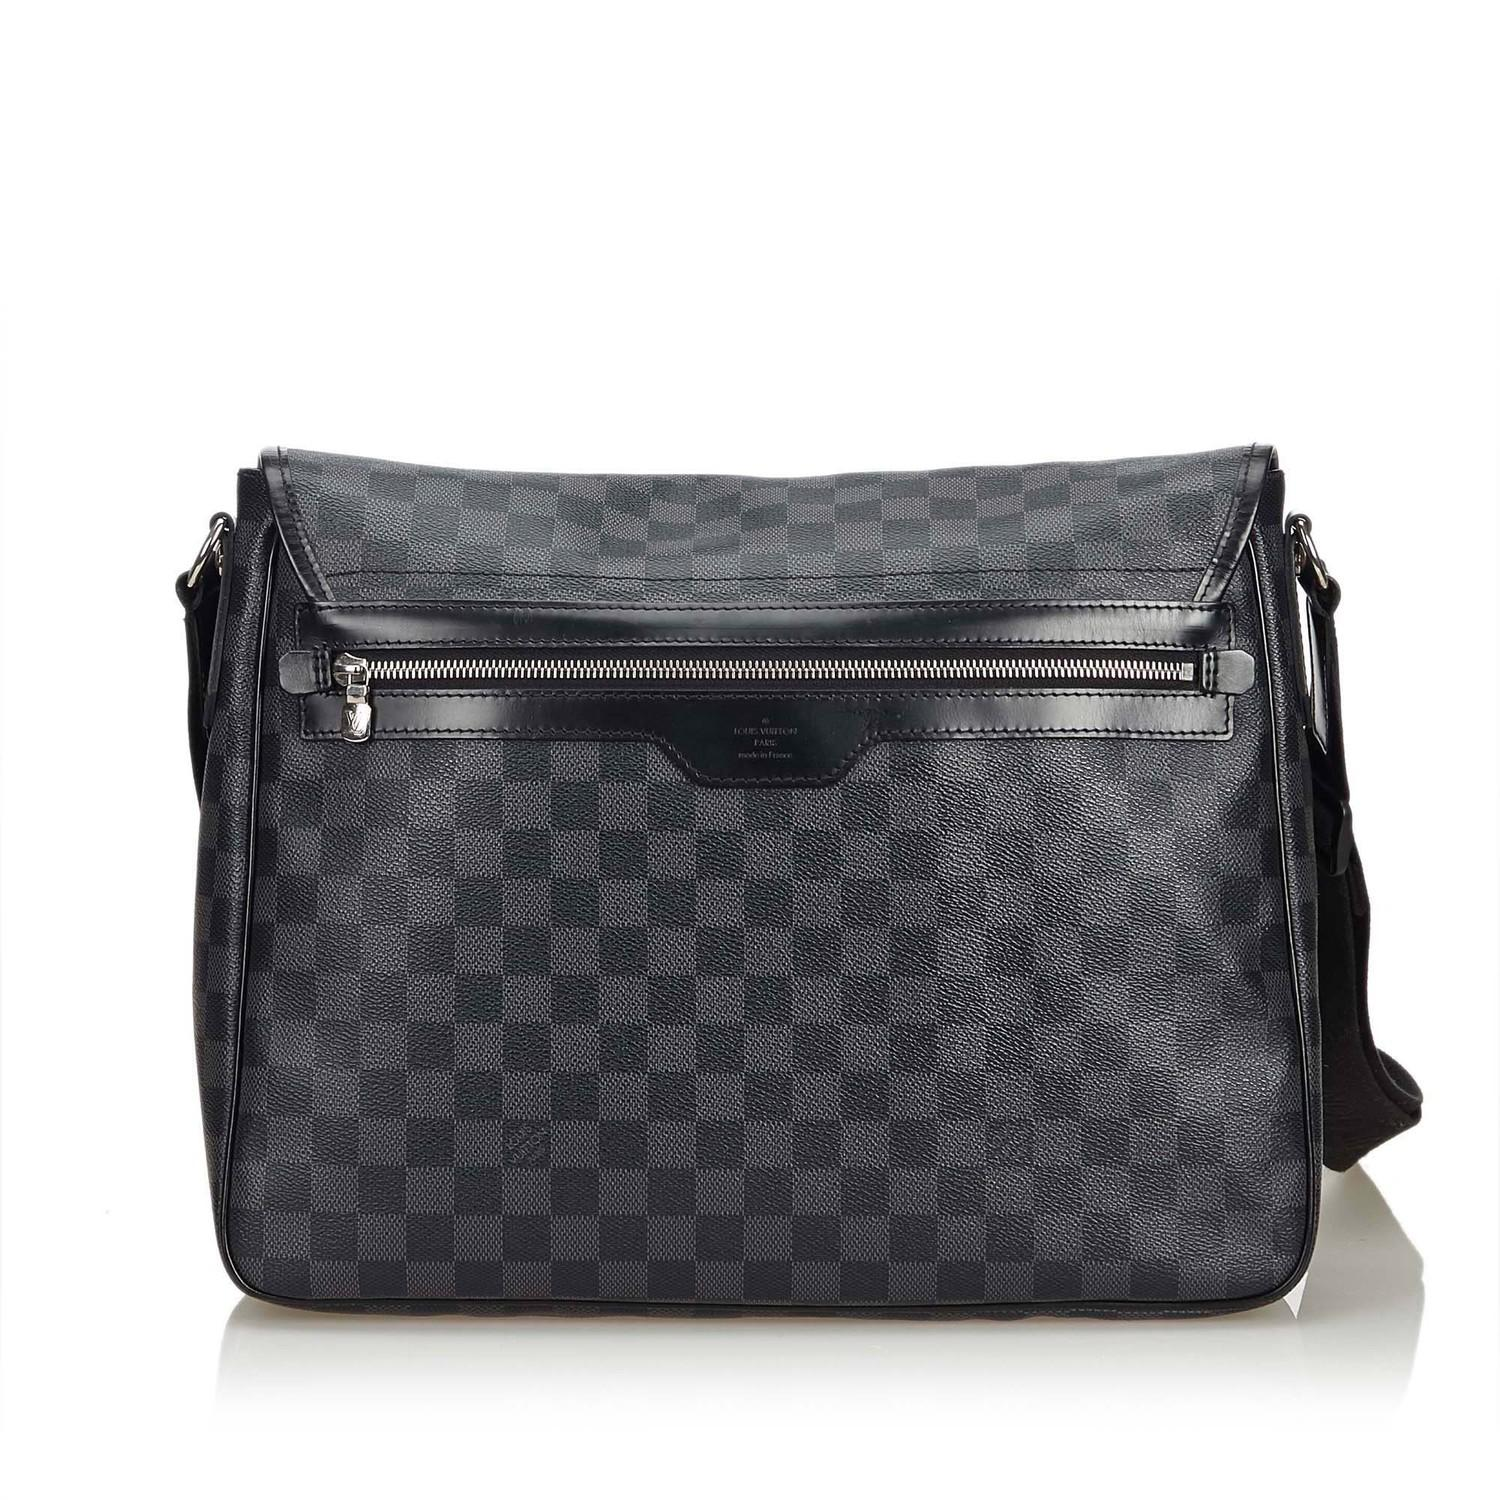 A Louis Vuitton Daniel Messenger Bag Damier Graphite is very resistant to water and scratches, and - Image 3 of 9